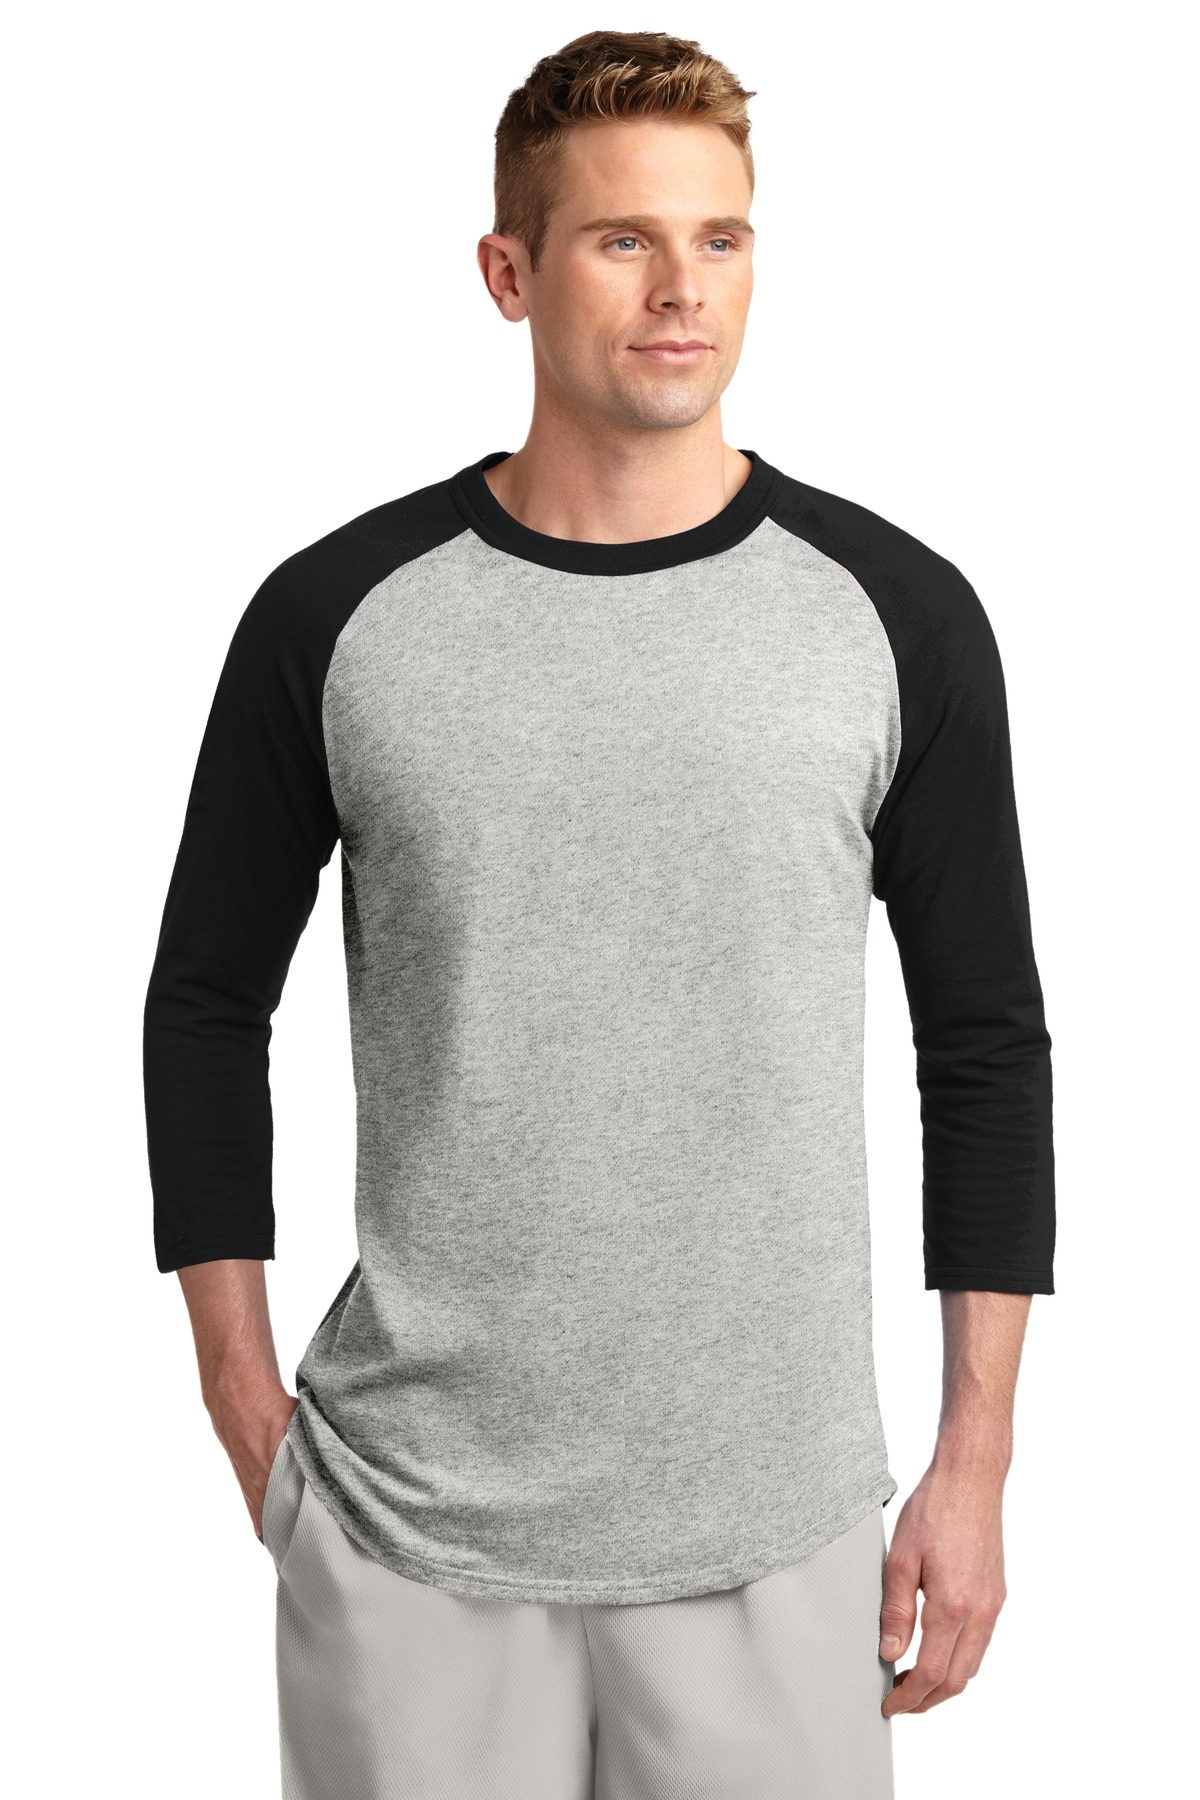 Sport-Tek ®  Colorblock Raglan Jersey.  T200 - Heather Grey/Black